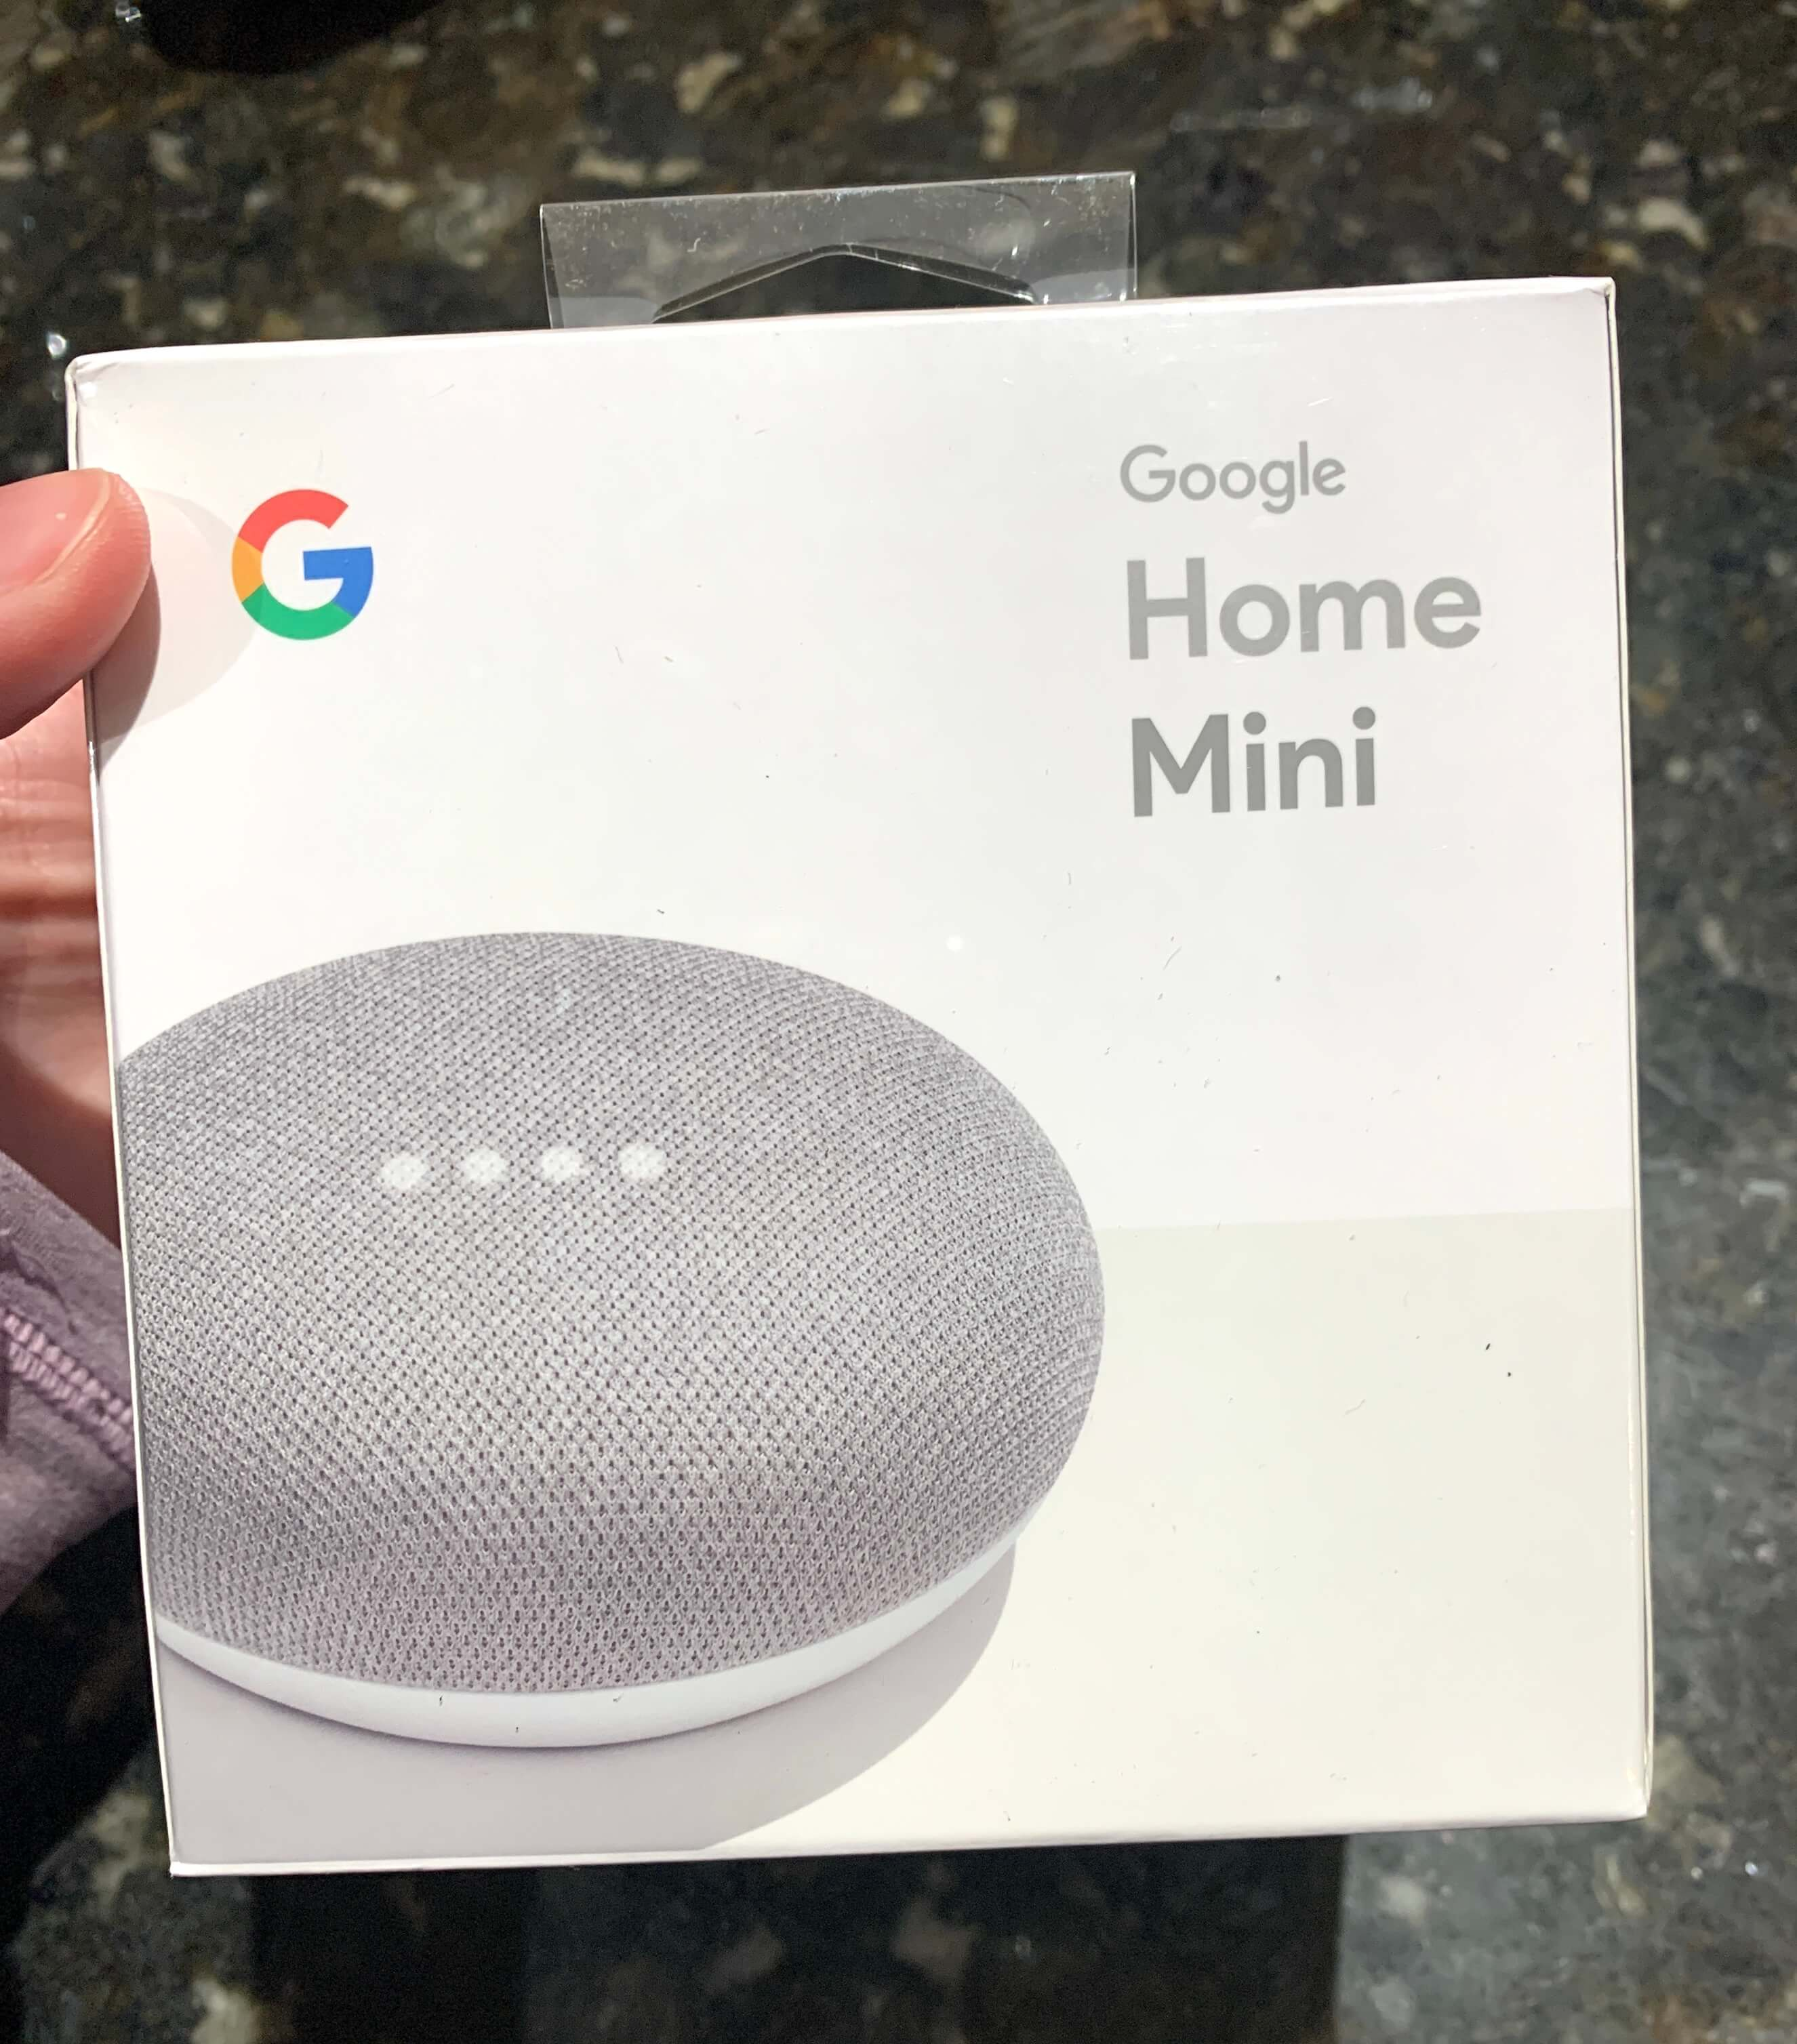 Google Home Mini box